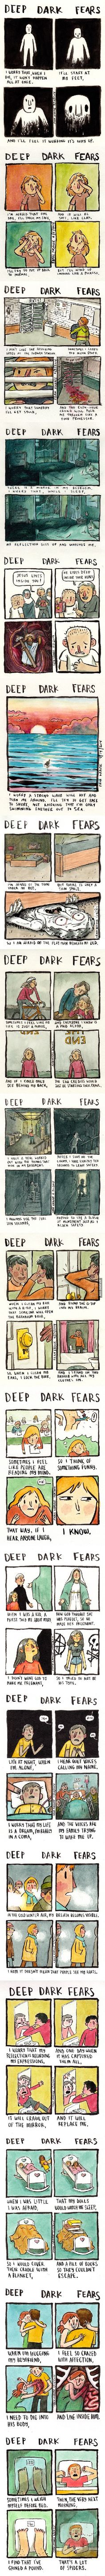 All the Deep Dark Fears Part (3 of 5)